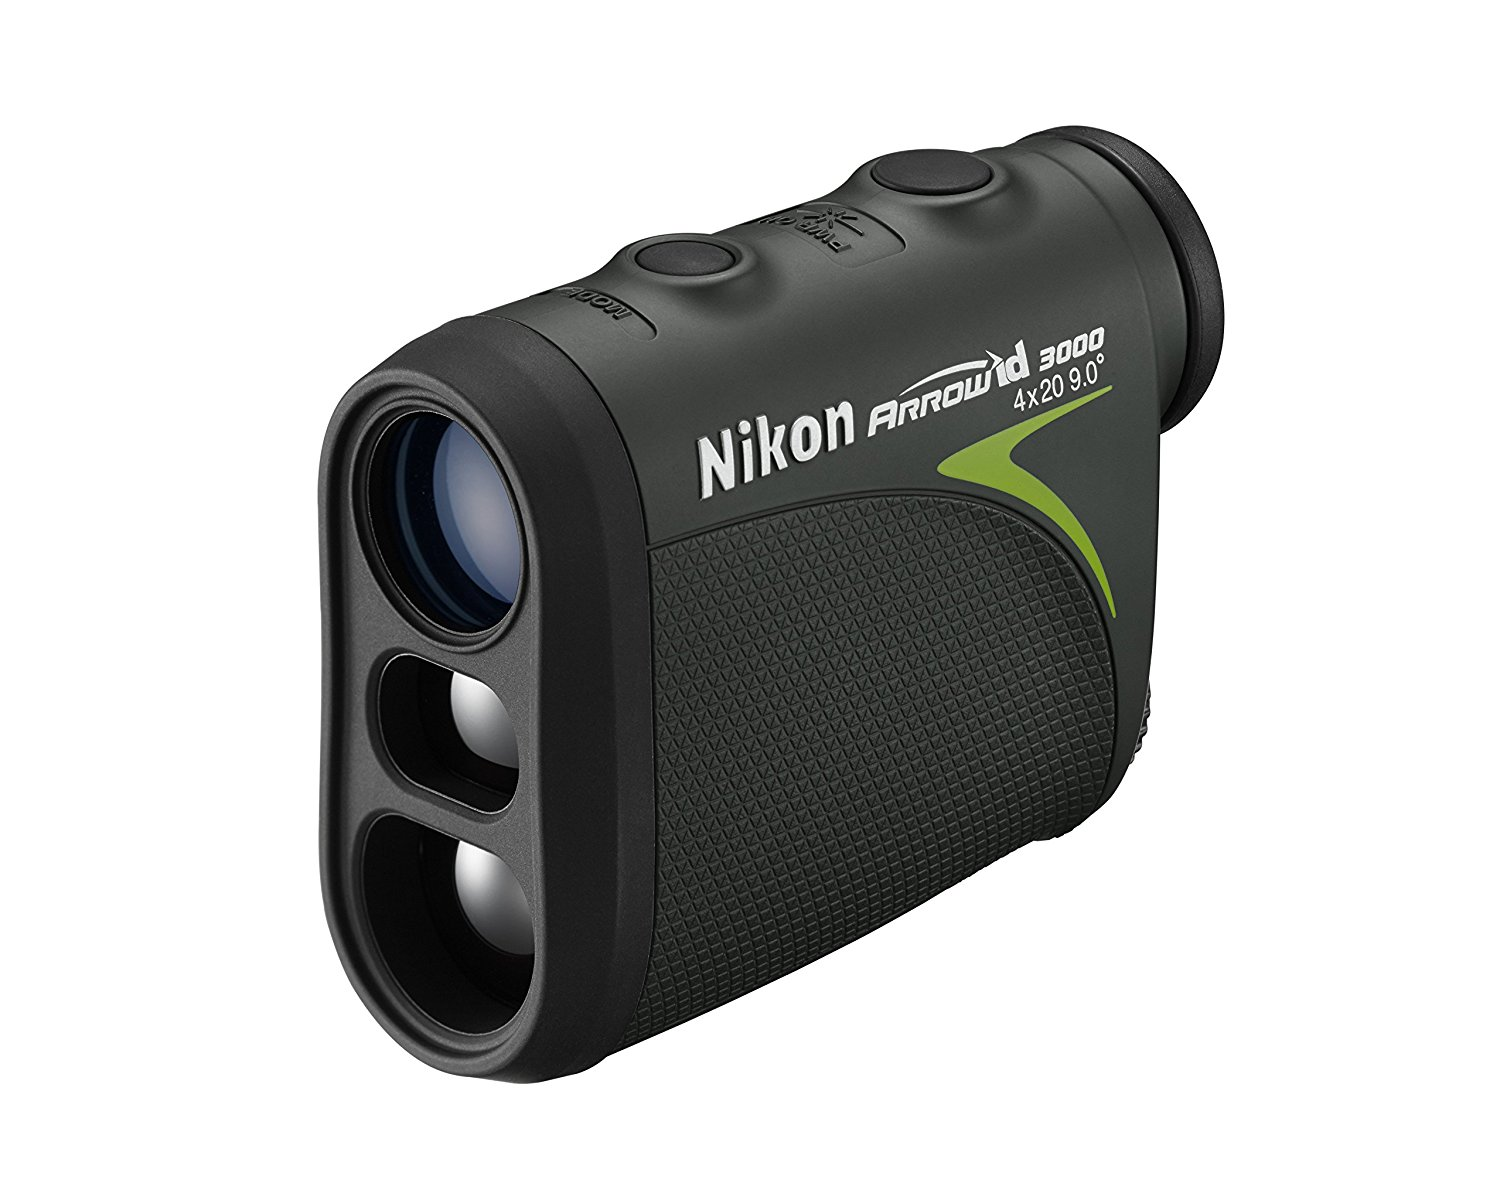 Nikon 16224 Arrow ID 3000 Bow Hunting Laser Rangefinder